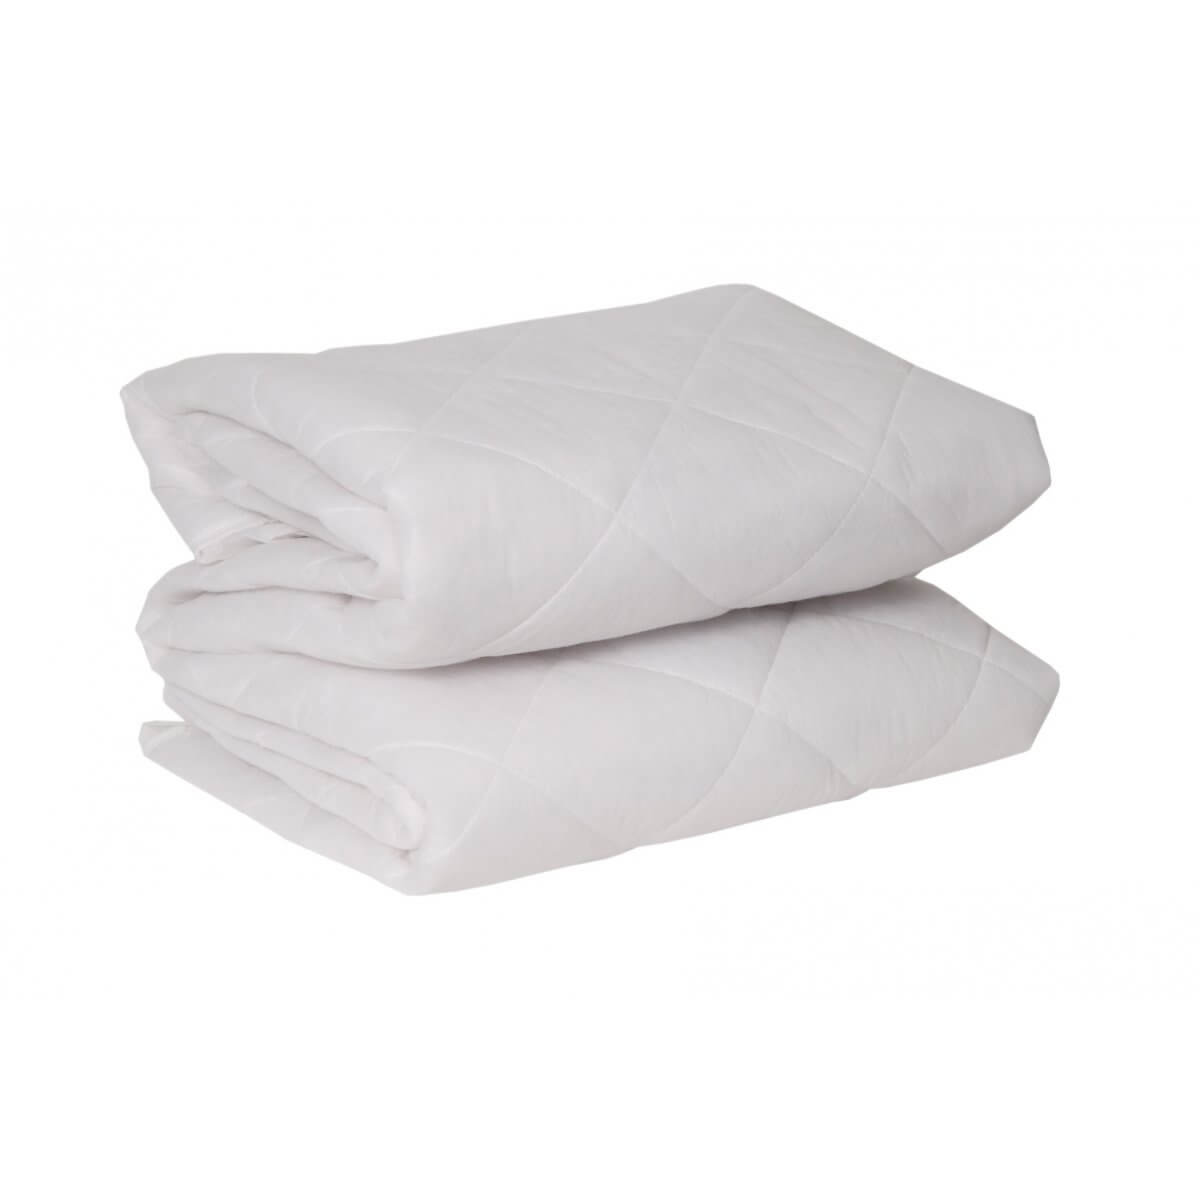 Easy Care Mattress Protector